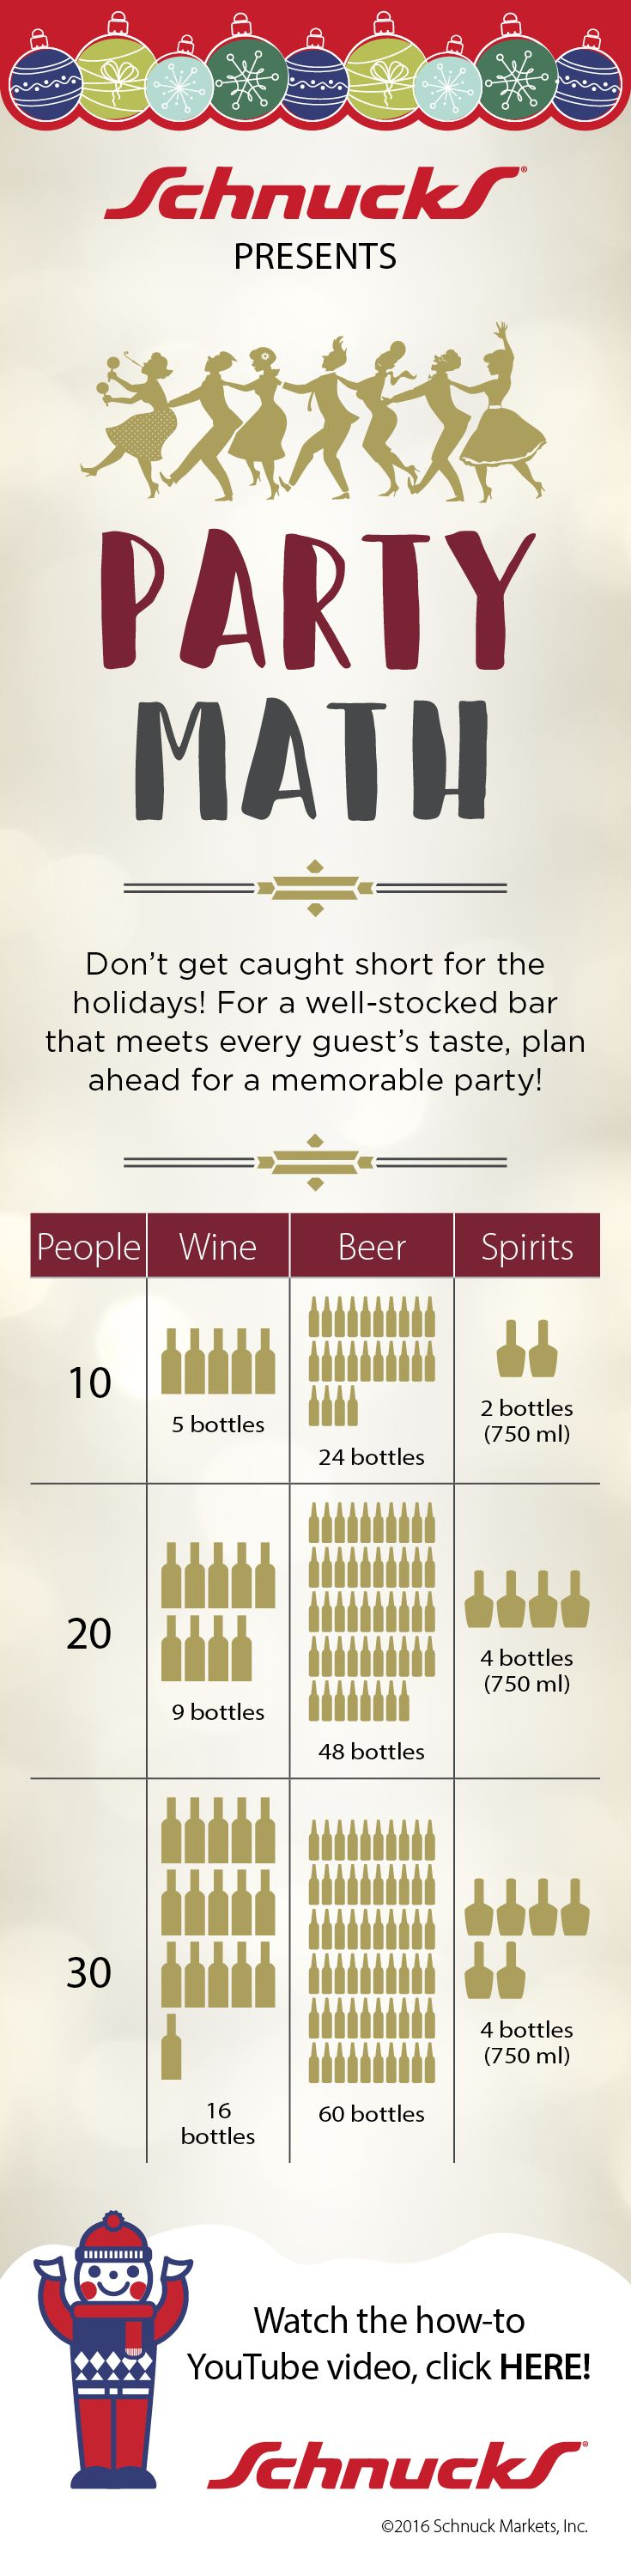 Don't get caught short for your holiday parties! Use this Party Math to find the perfect drink-to-person ratio!